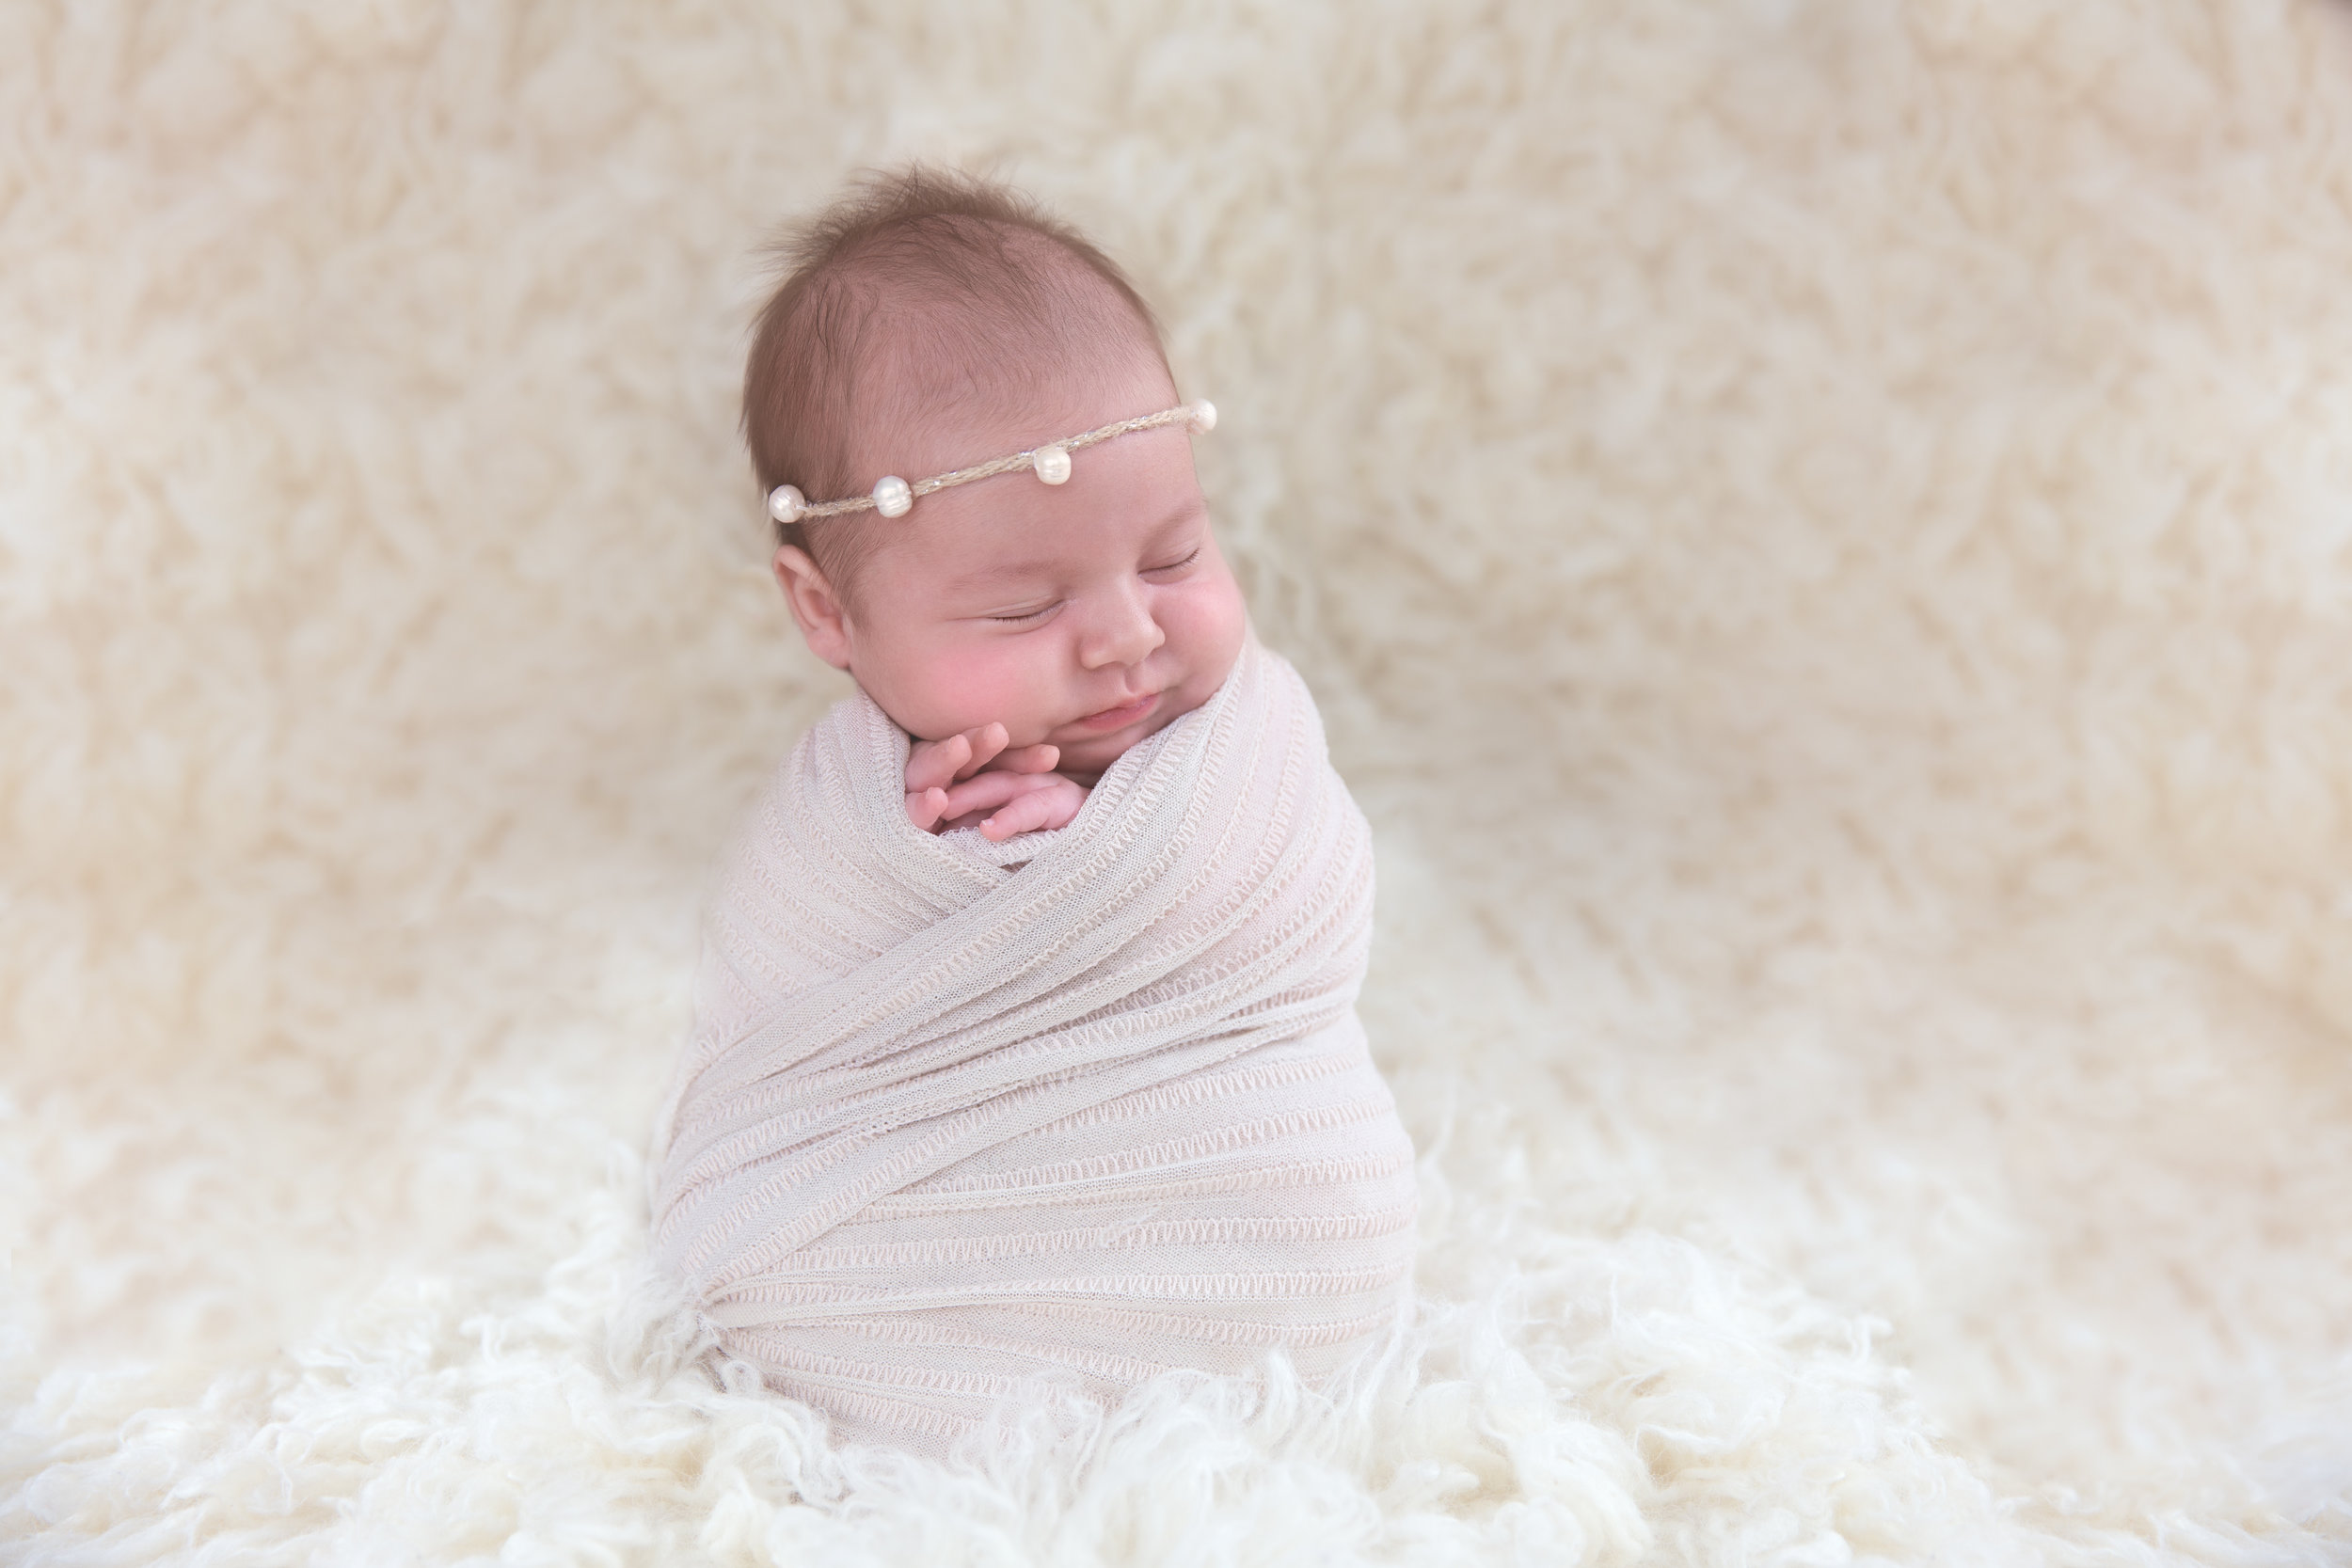 Potato sack pose during Newborn shoot for a baby girl. Calgary Newborn Photographer.